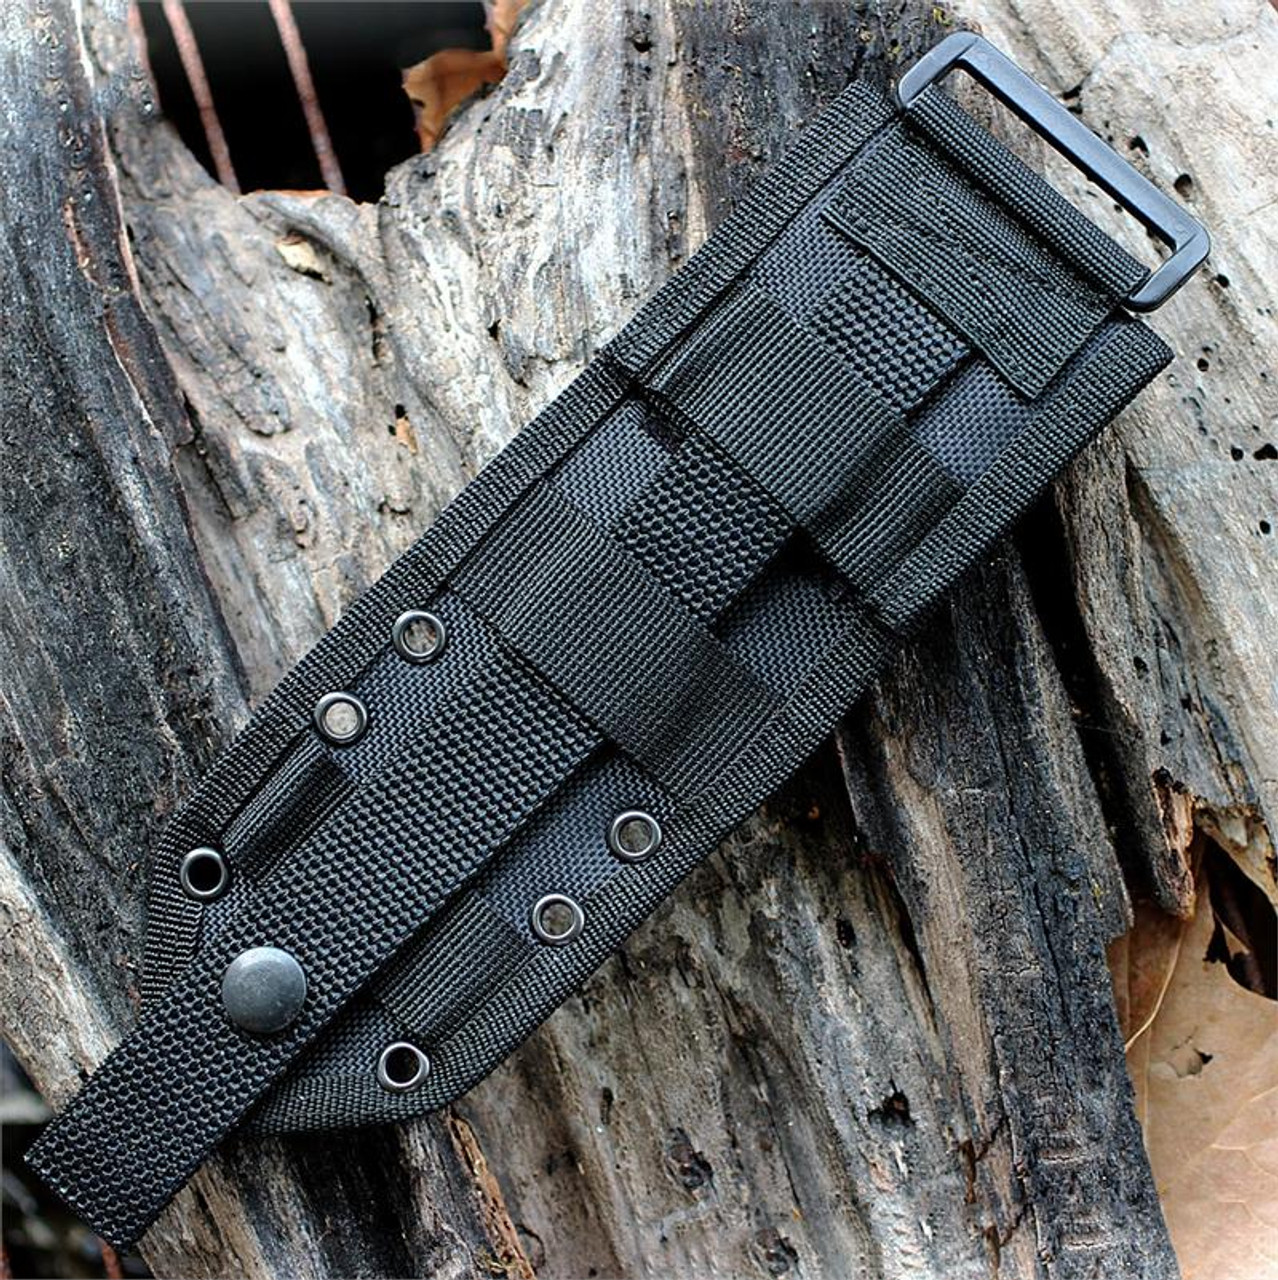 ESEE 3MIL-P, Plain Edge, OD Green Molded Sheath with Molle Back